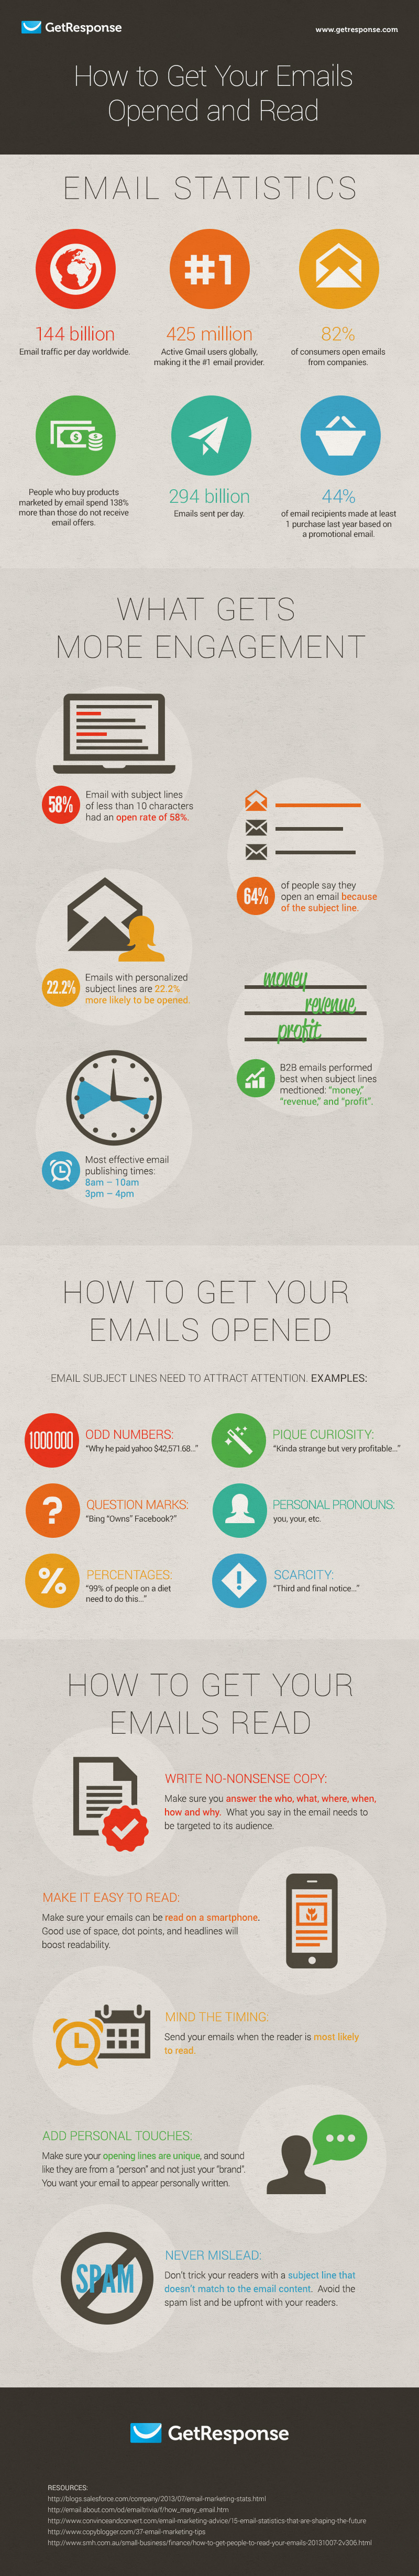 How to Get Your Emails Opened and Read